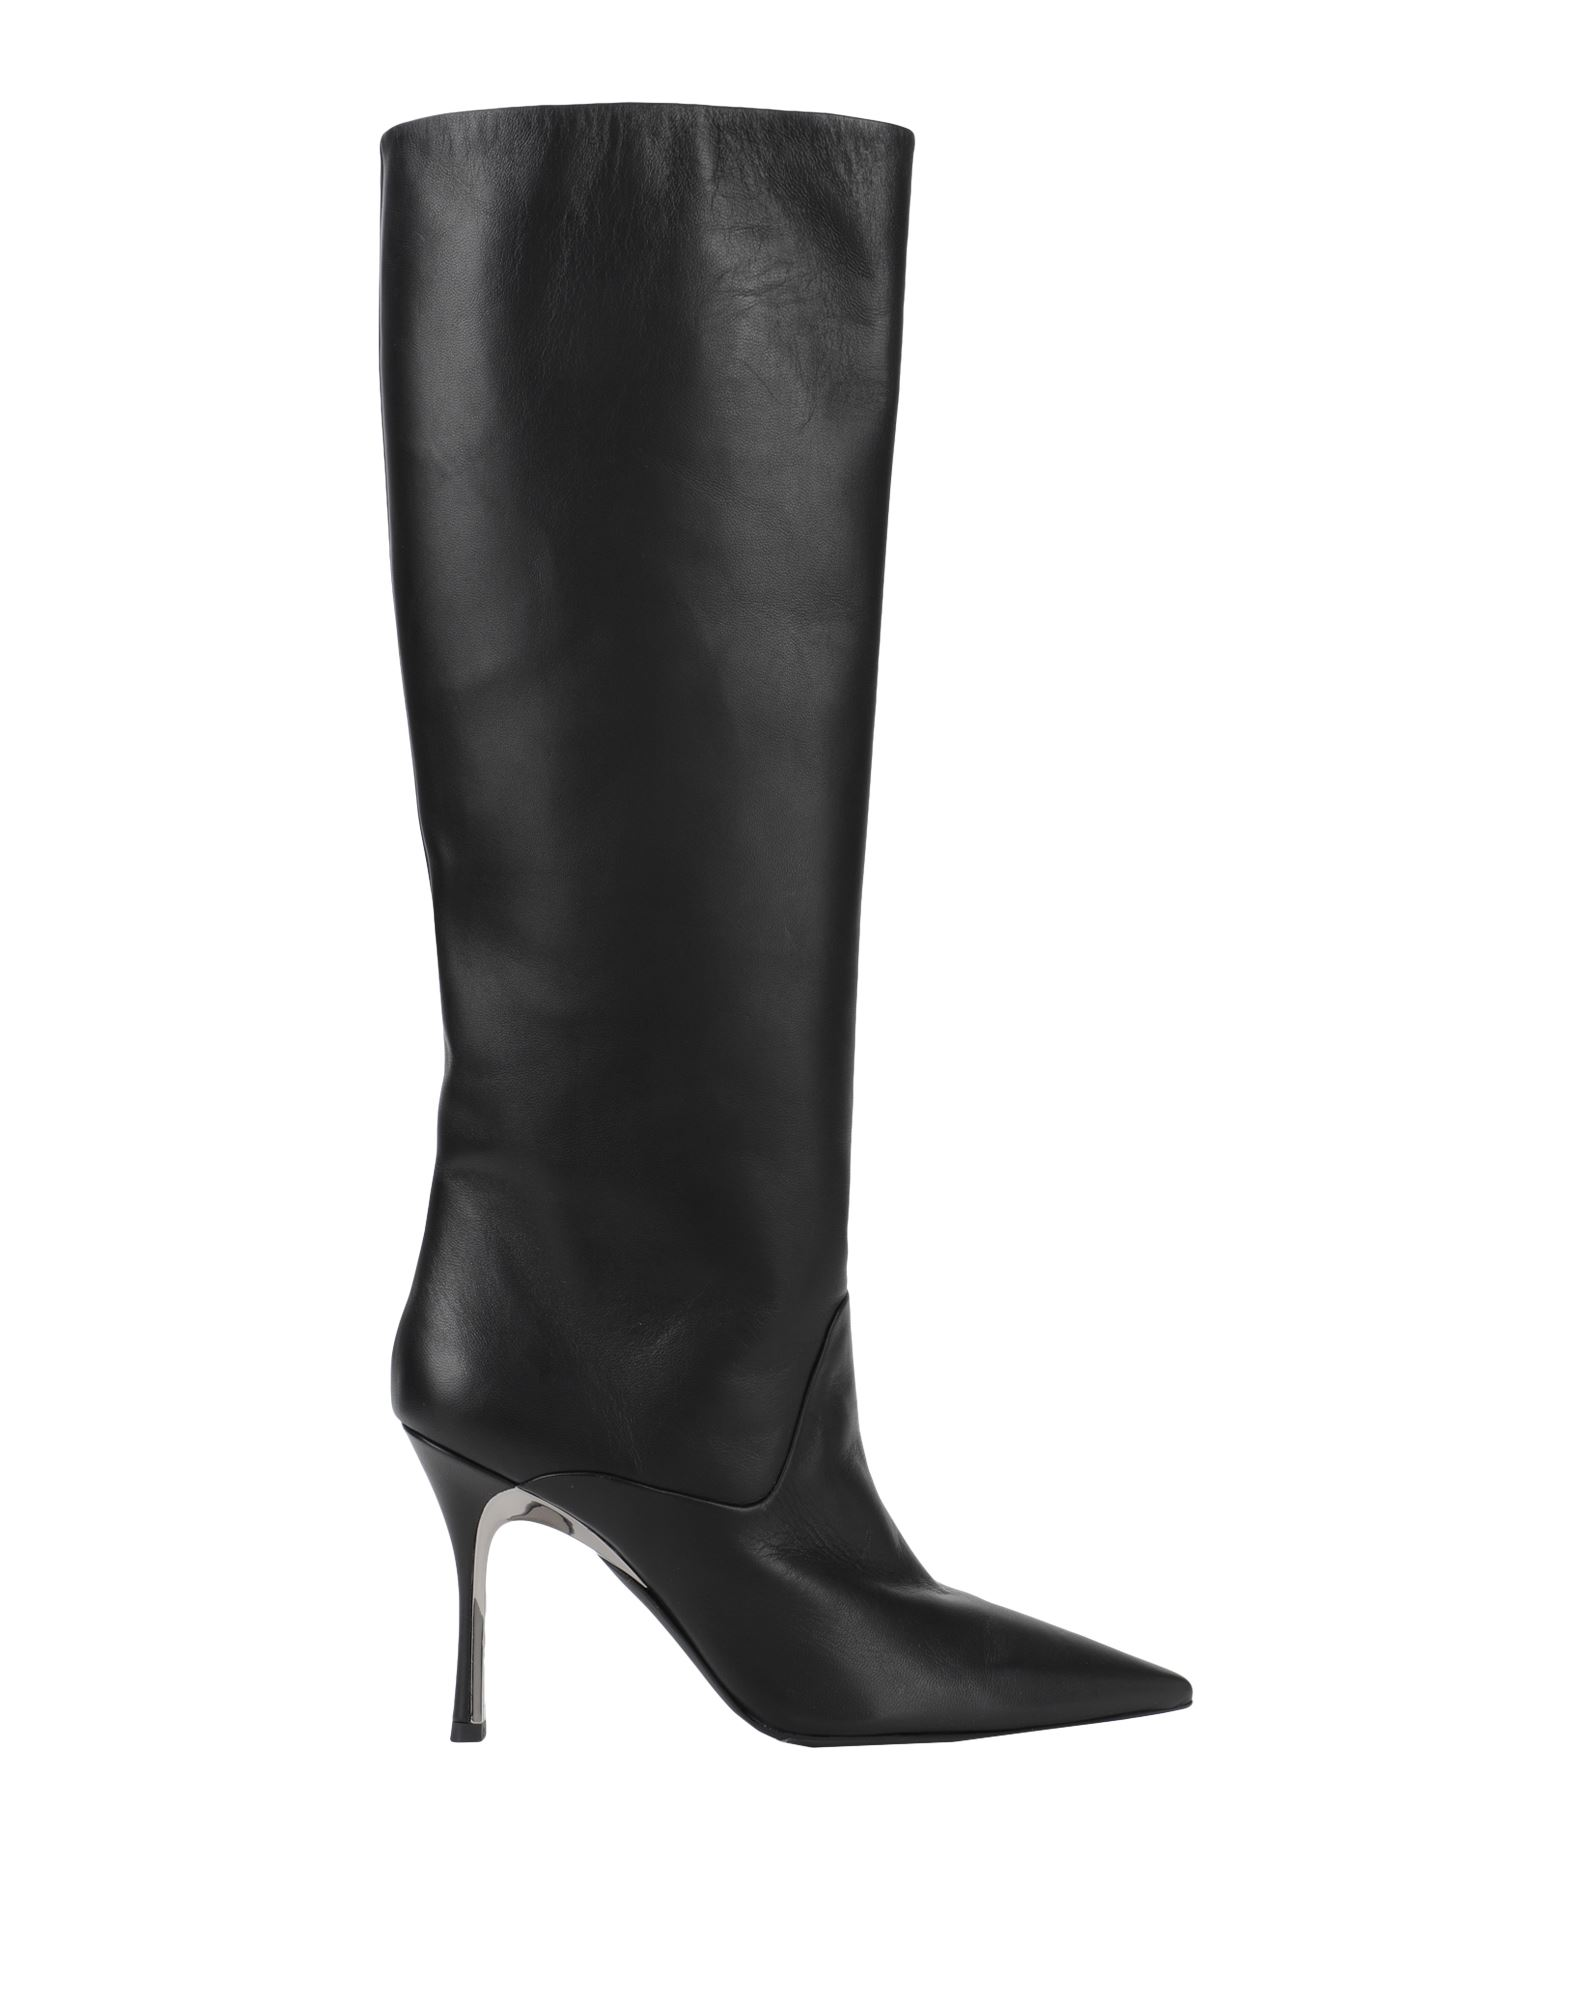 FURLA Boots. leather, no appliqués, solid color, narrow toeline, spike heel, leather lining, leather sole, contains non-textile parts of animal origin. 100% Sheepskin